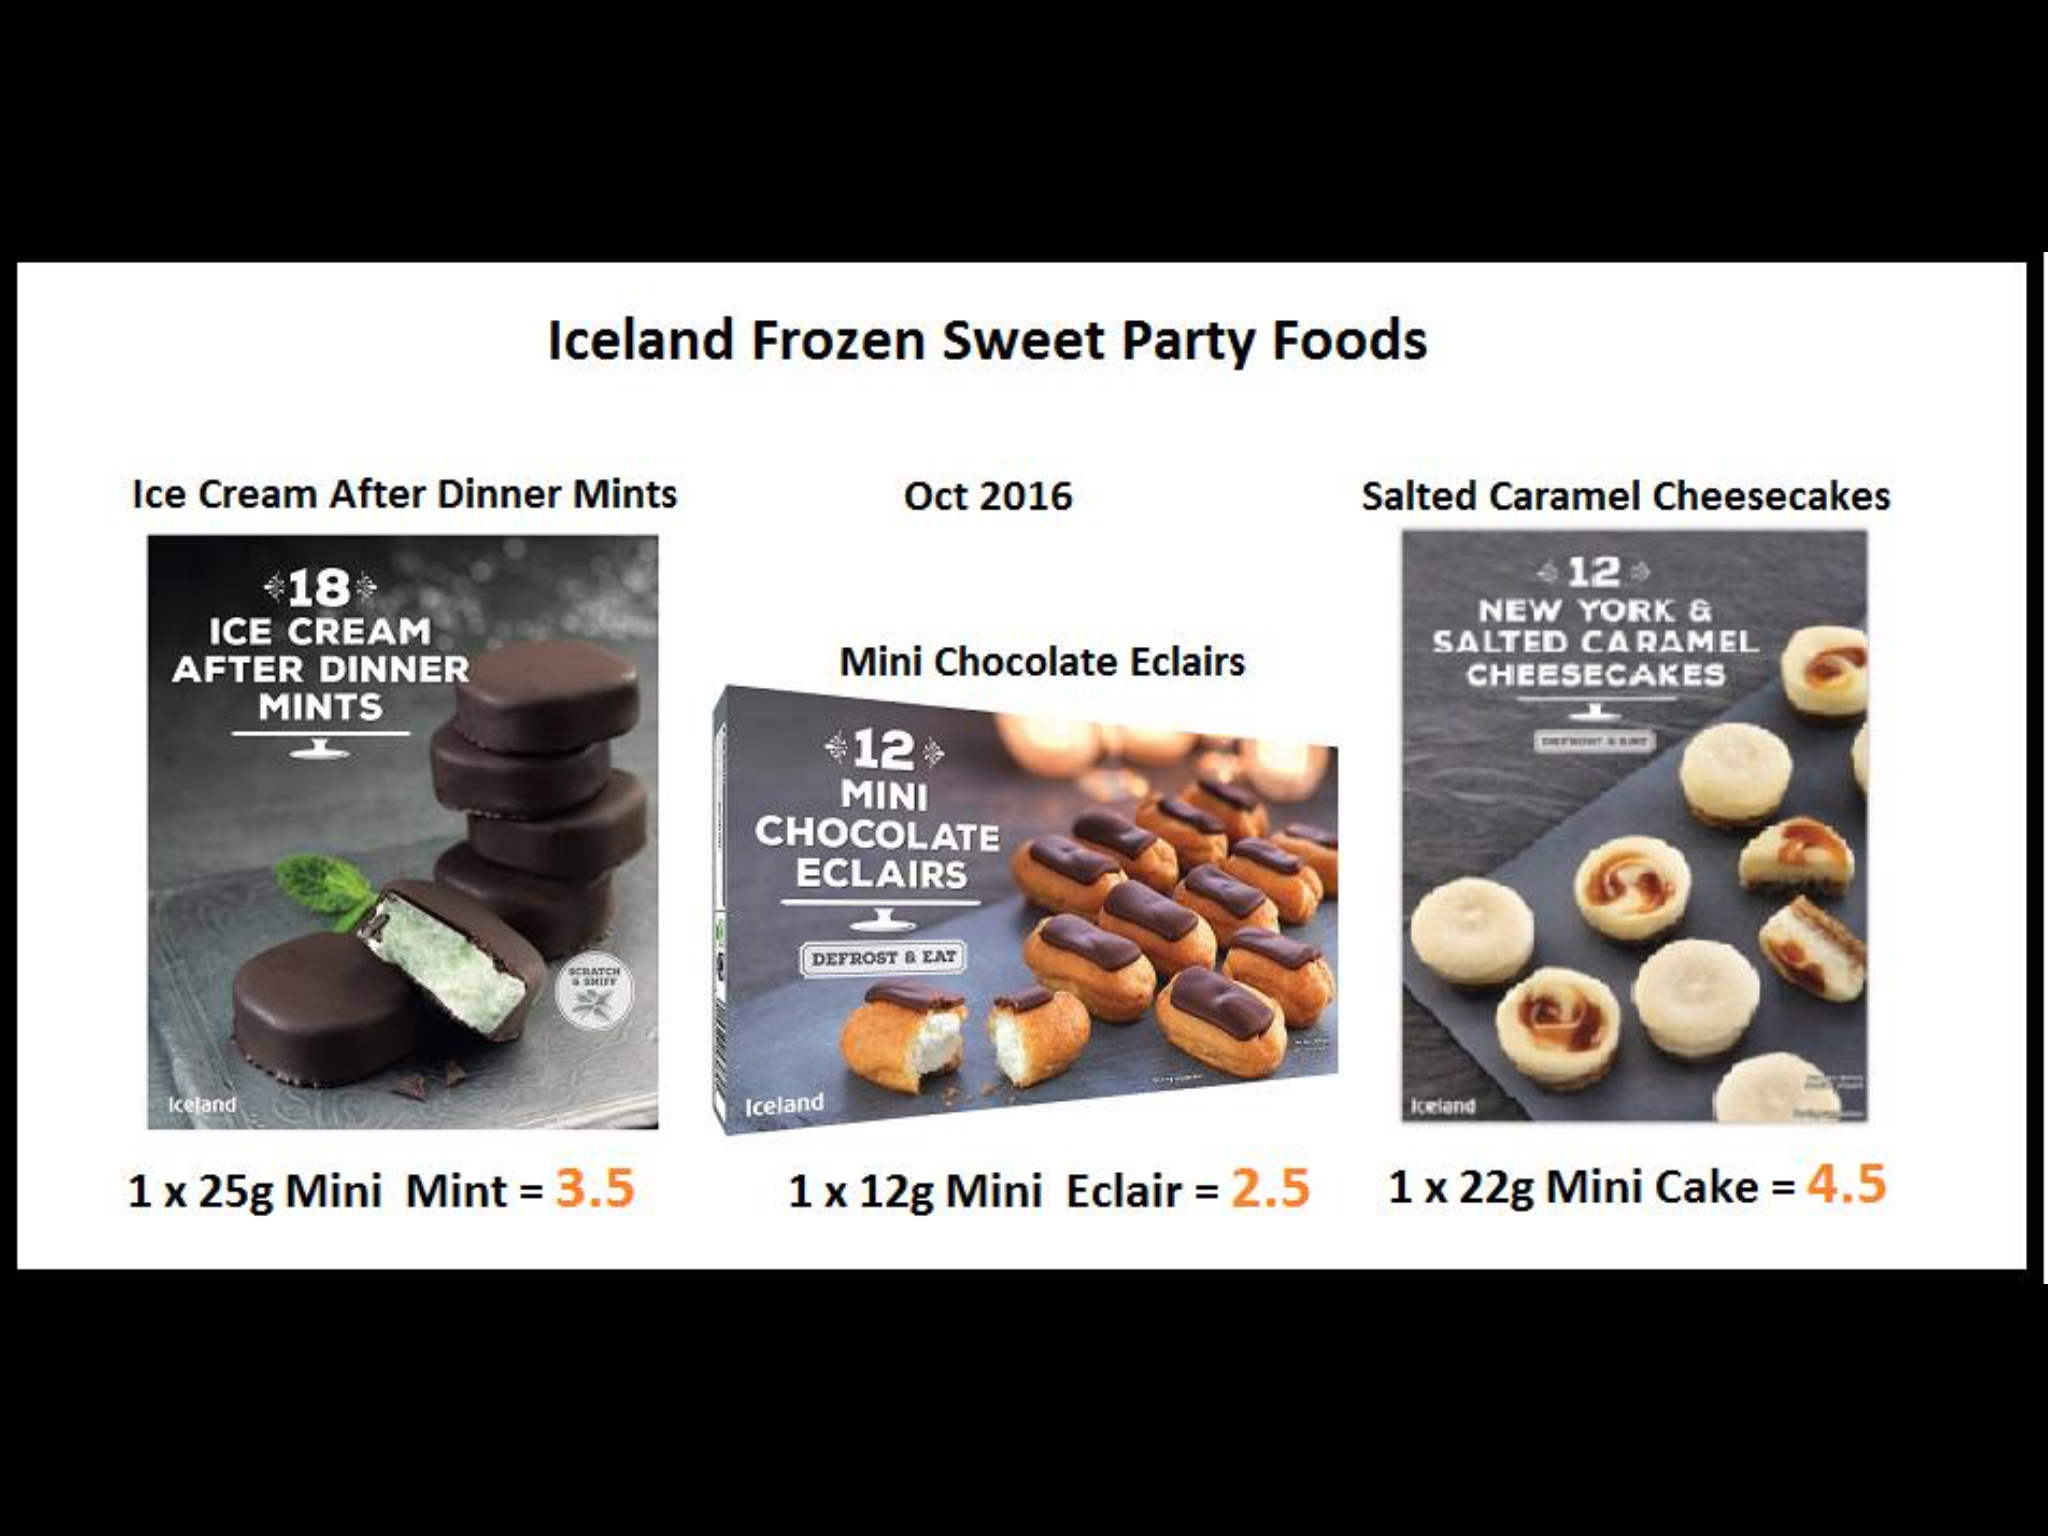 Pin By Sharon On Iceland Foods Syns Salted Caramel Cheesecake After Dinner Mints New York Ice Cream